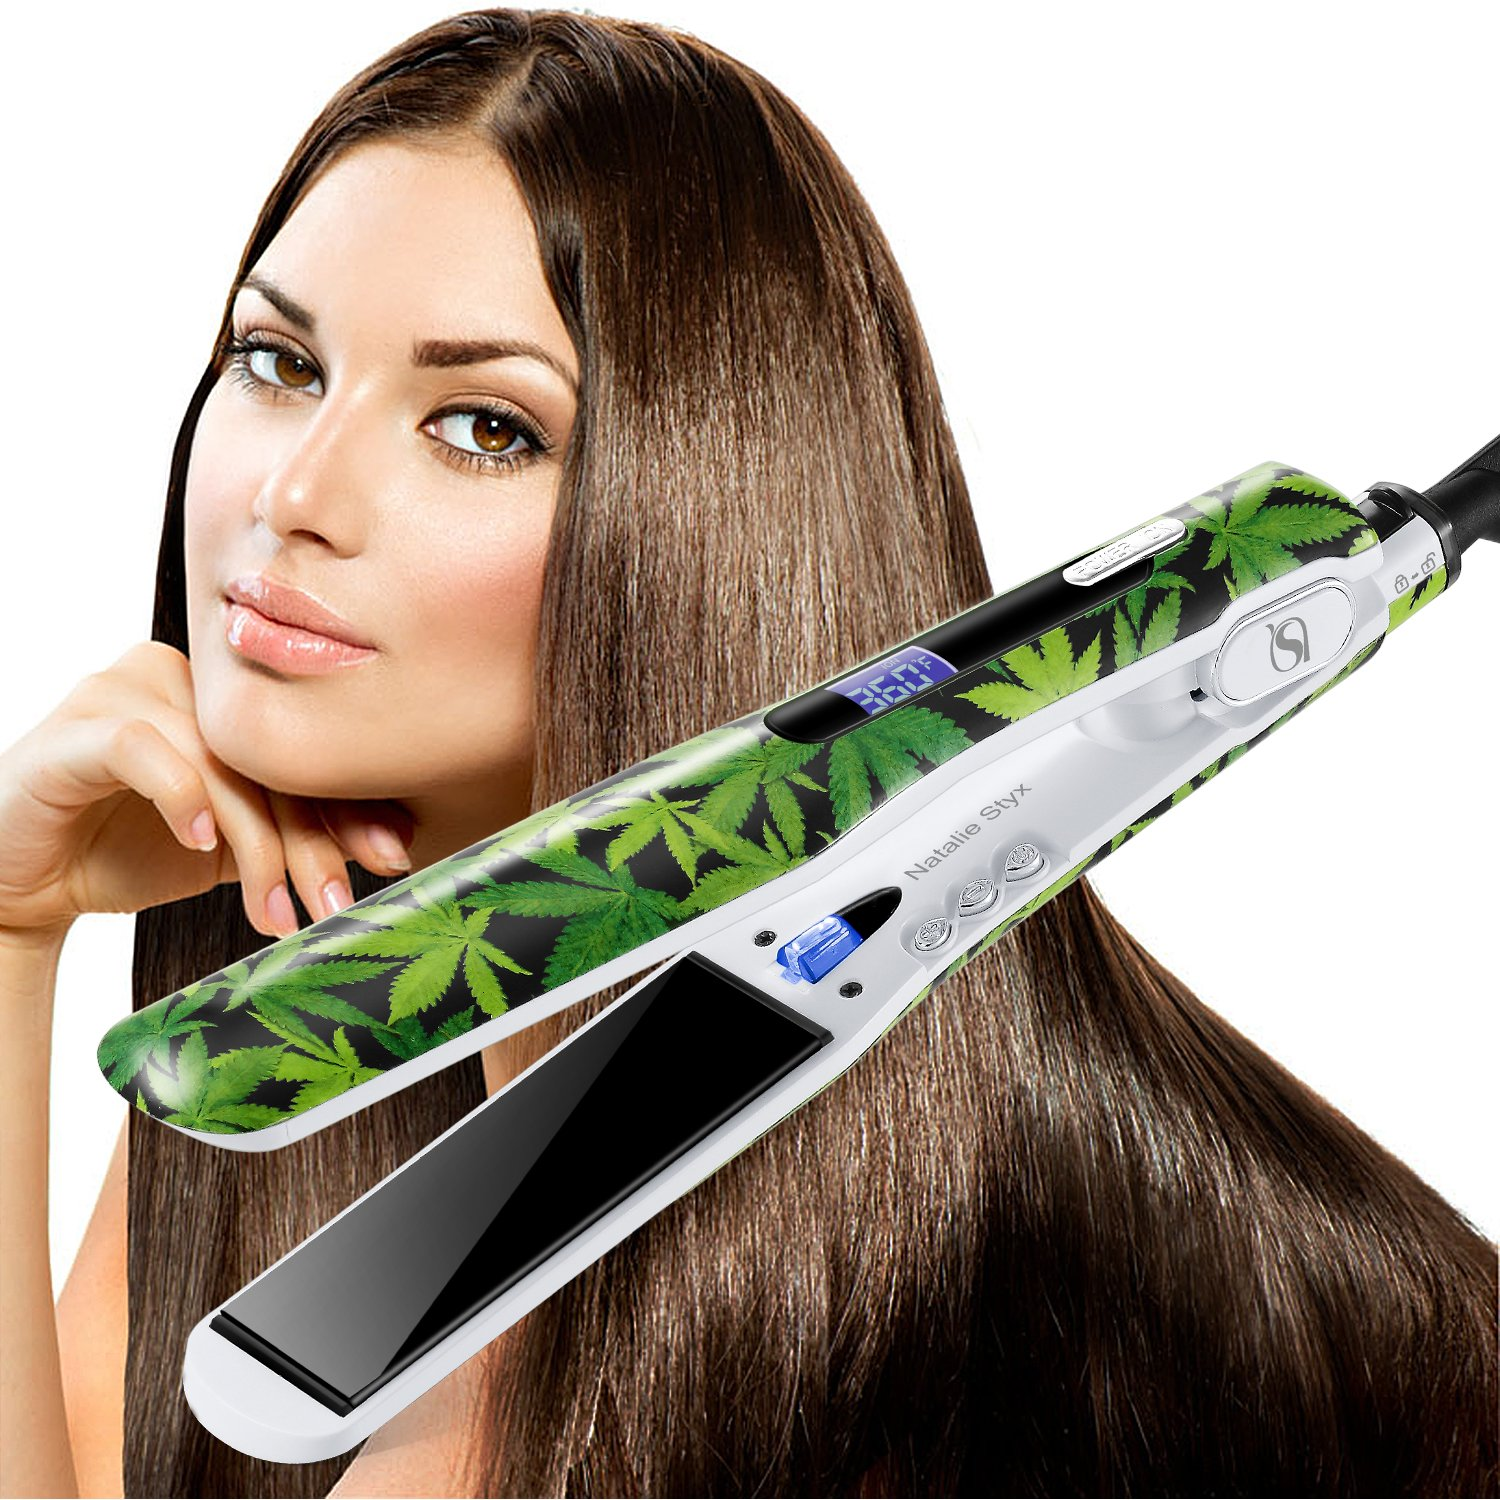 Natalie Styx Professional Tourmaline Ceramic Flat Iron Hair Straightener with LCD Display, High Heat 450F, Dual Voltage plus Travel Pouch, Glove,2 Clips Gift for Lovers - Green Leaves, 1.5 Inches